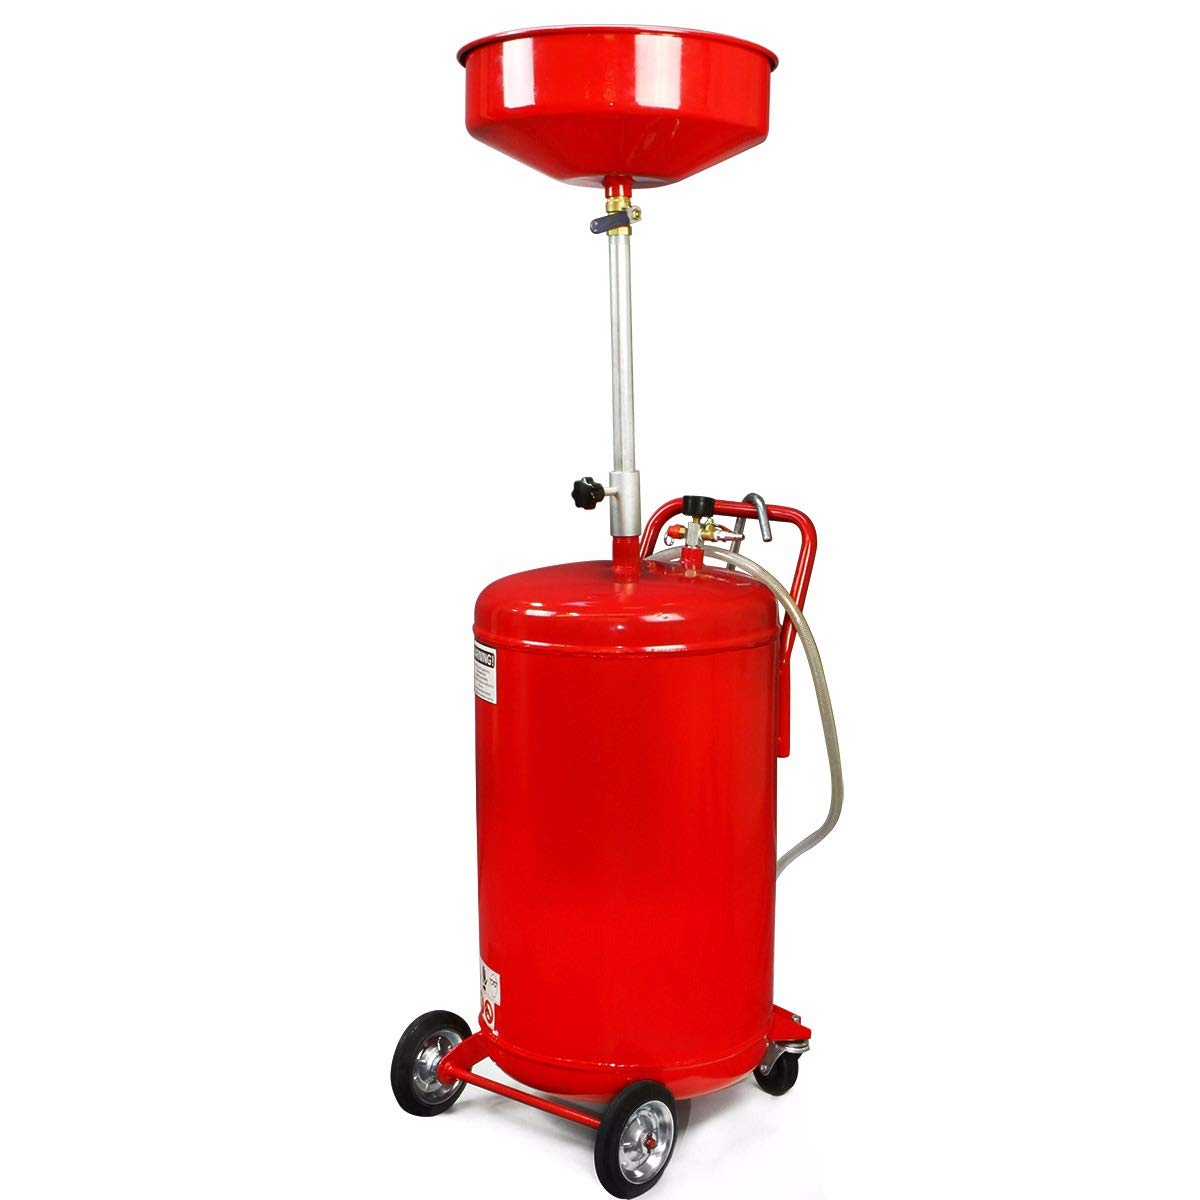 XtremepowerUS 20 Gallon Portable Waste Oil Drain Tank Air Operated Drainage Adjustable Funnel Height with Wheel, Red by XtremepowerUS (Image #1)